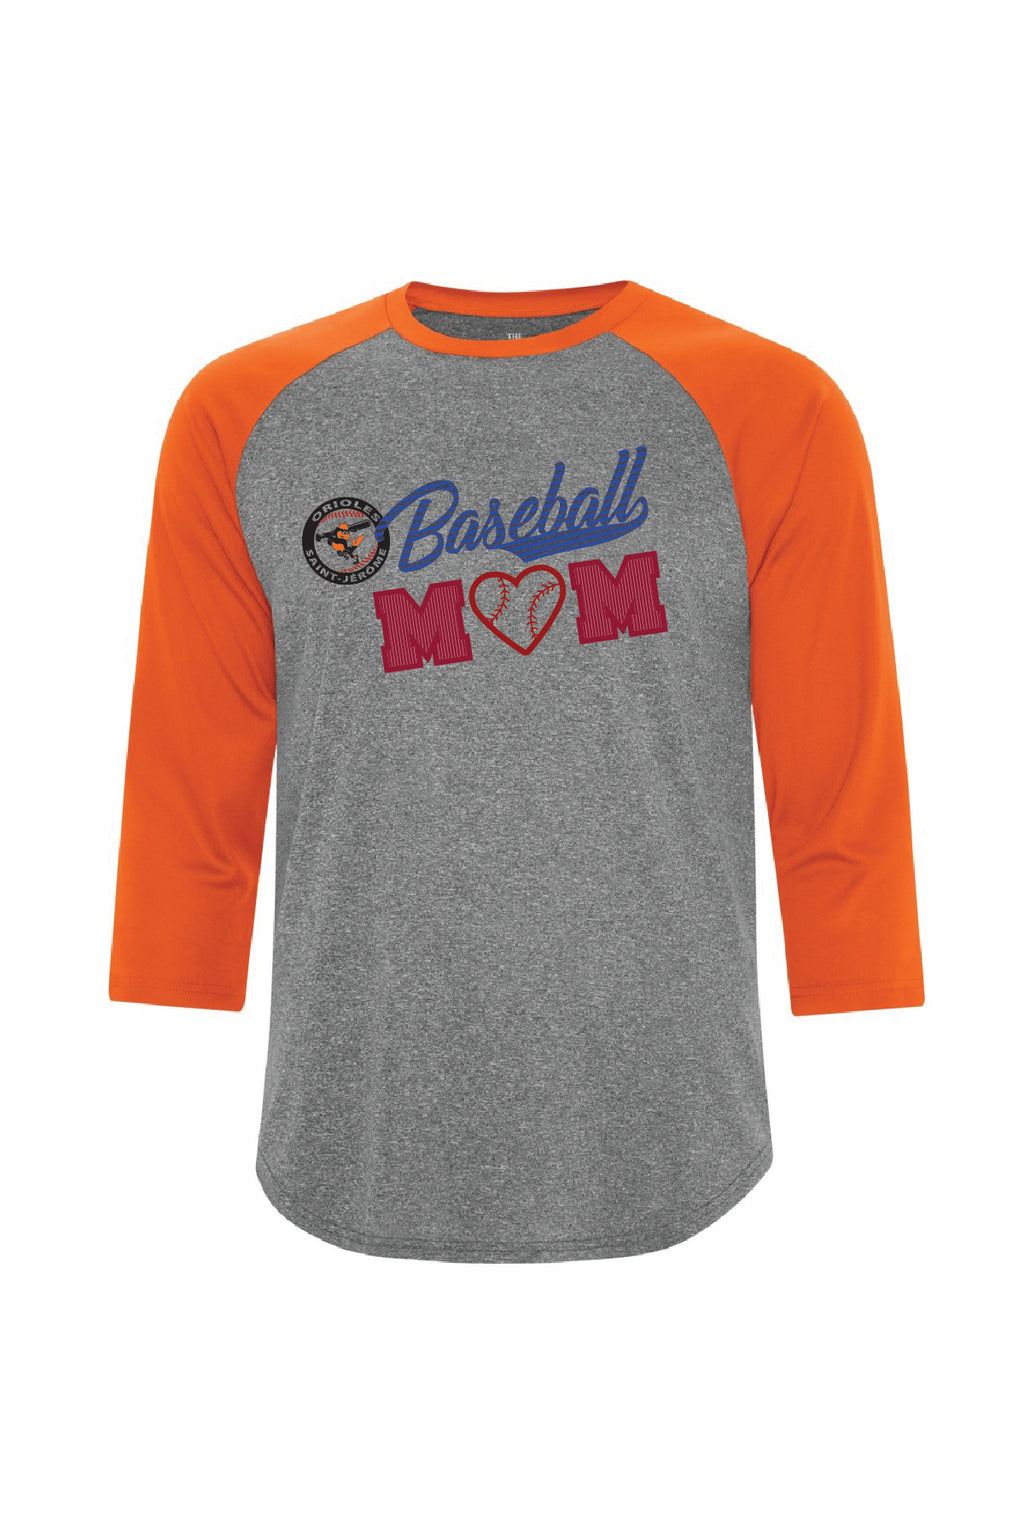 Chandail manche 3/4 Sublimé - Baseball MOM